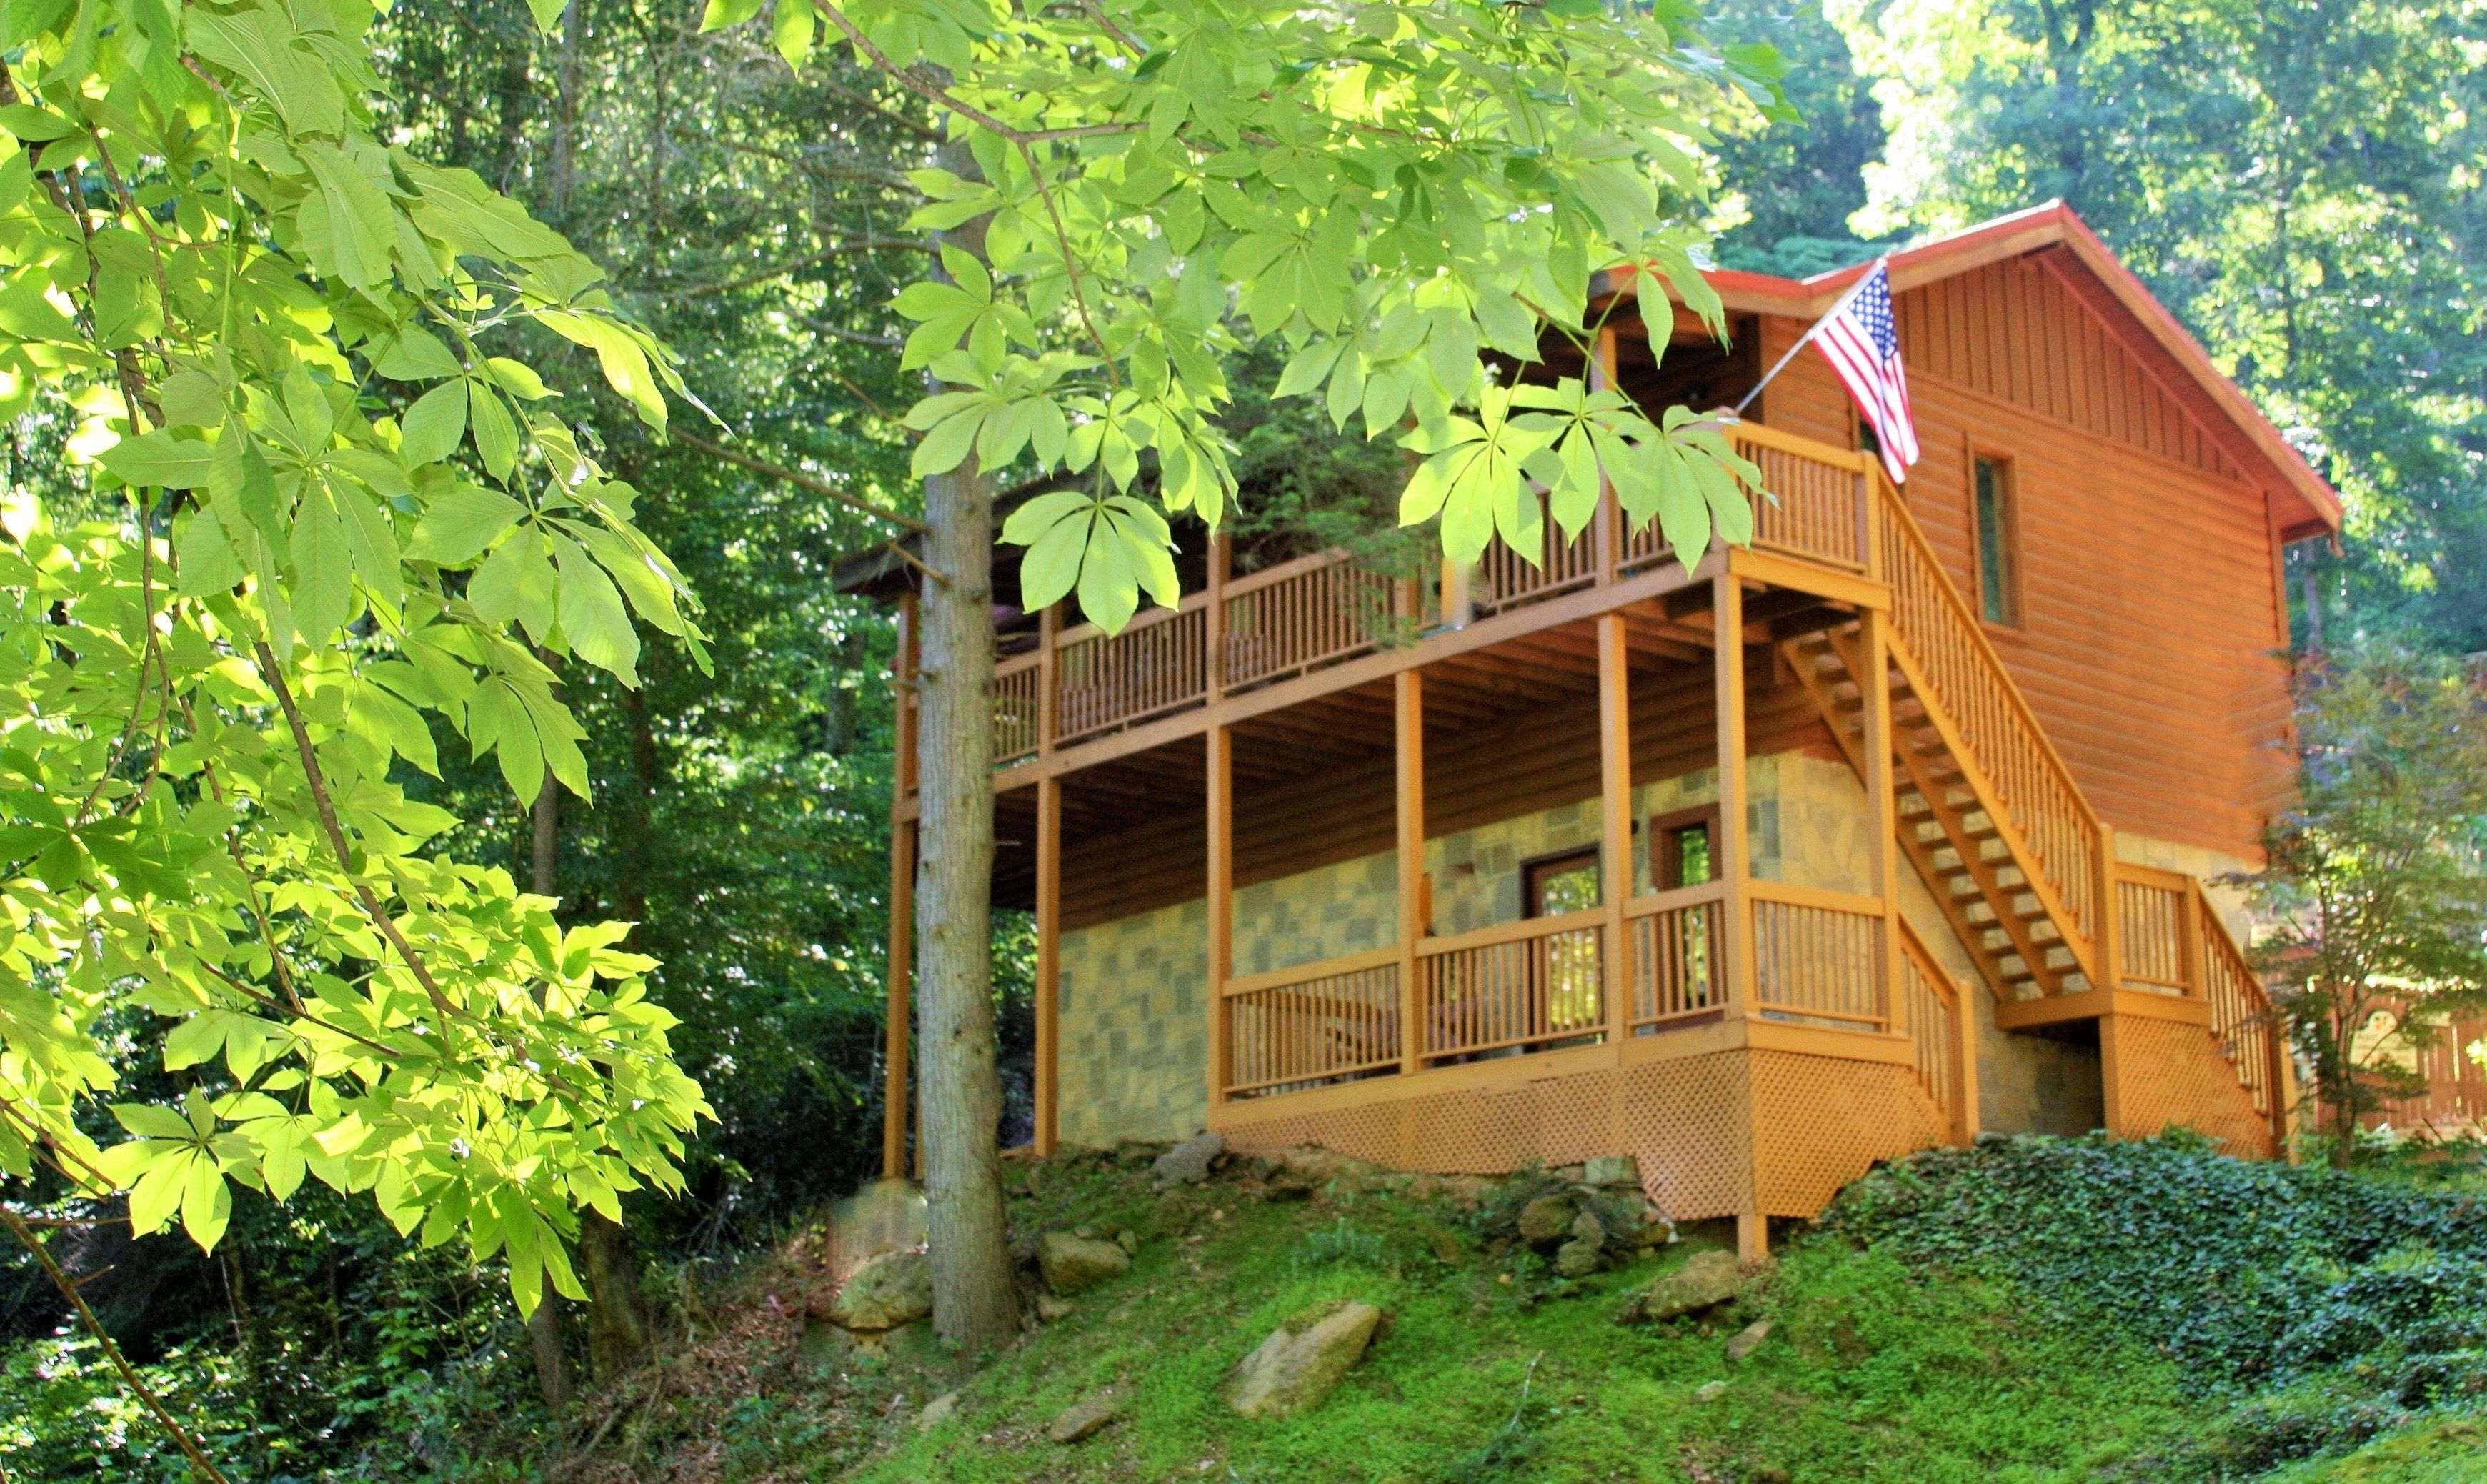 pyt plans cabin view bathroom cabins affordable tn pigeon forge home specials near dollywood bear rentals inspiration log heavenly